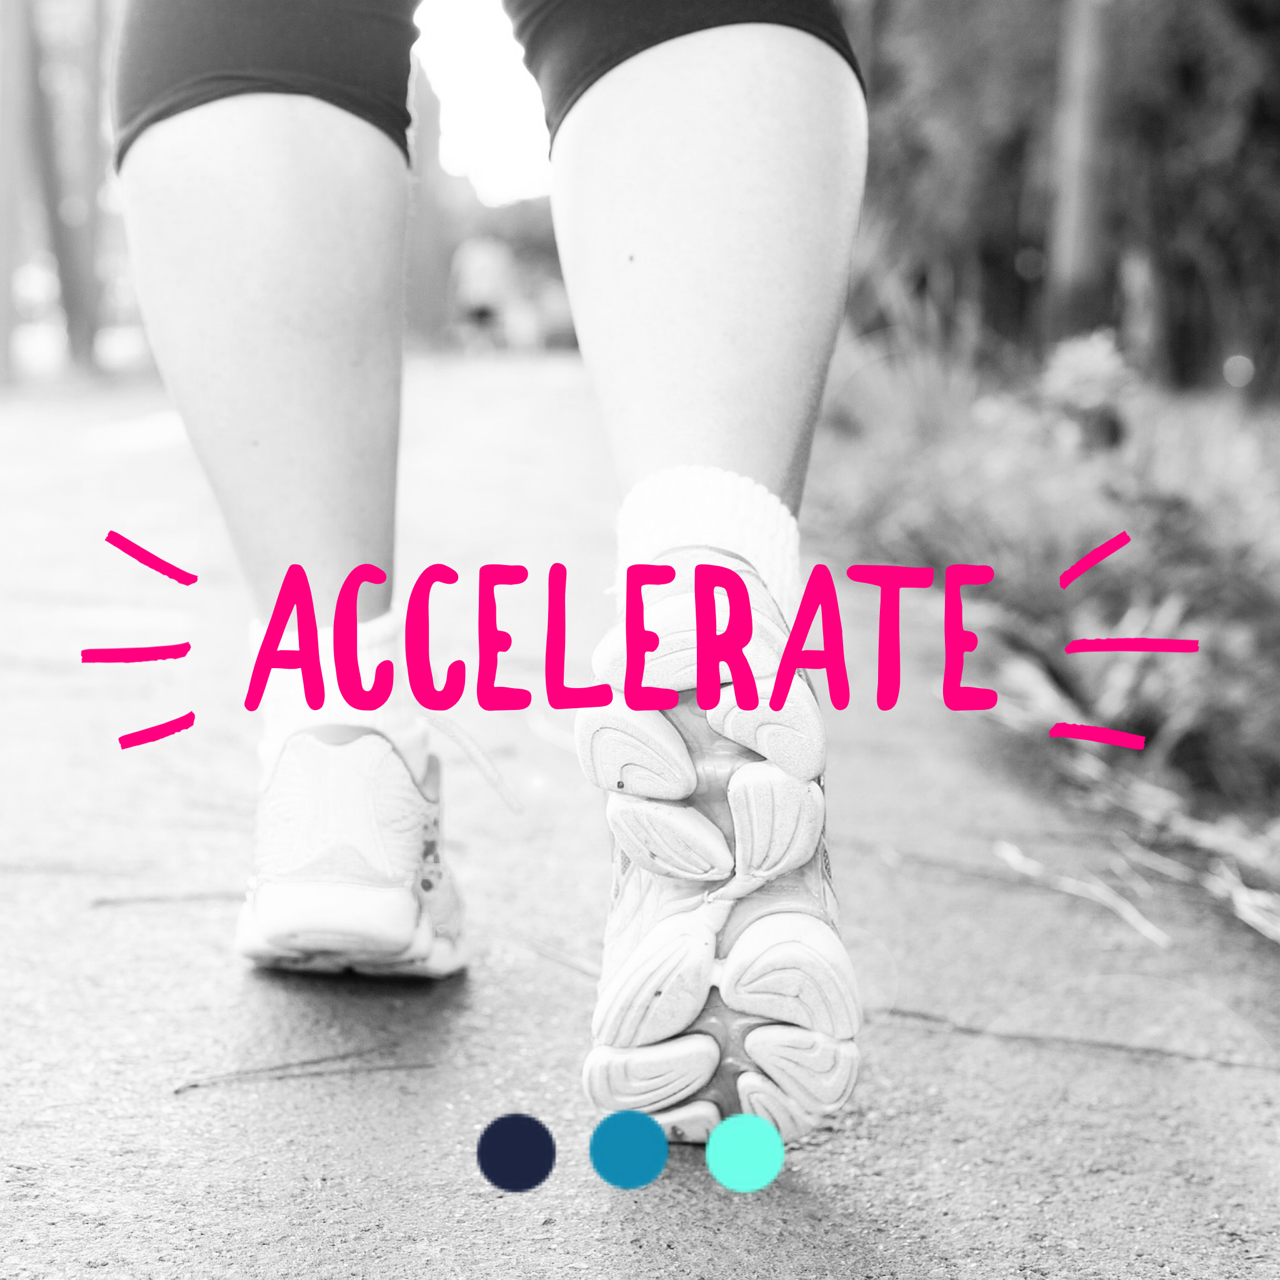 JUNE   In June, we will ask you to  ACCELERATE . A little faster. A little harder. A little extra effort. When you accelerate, you achieve great things.